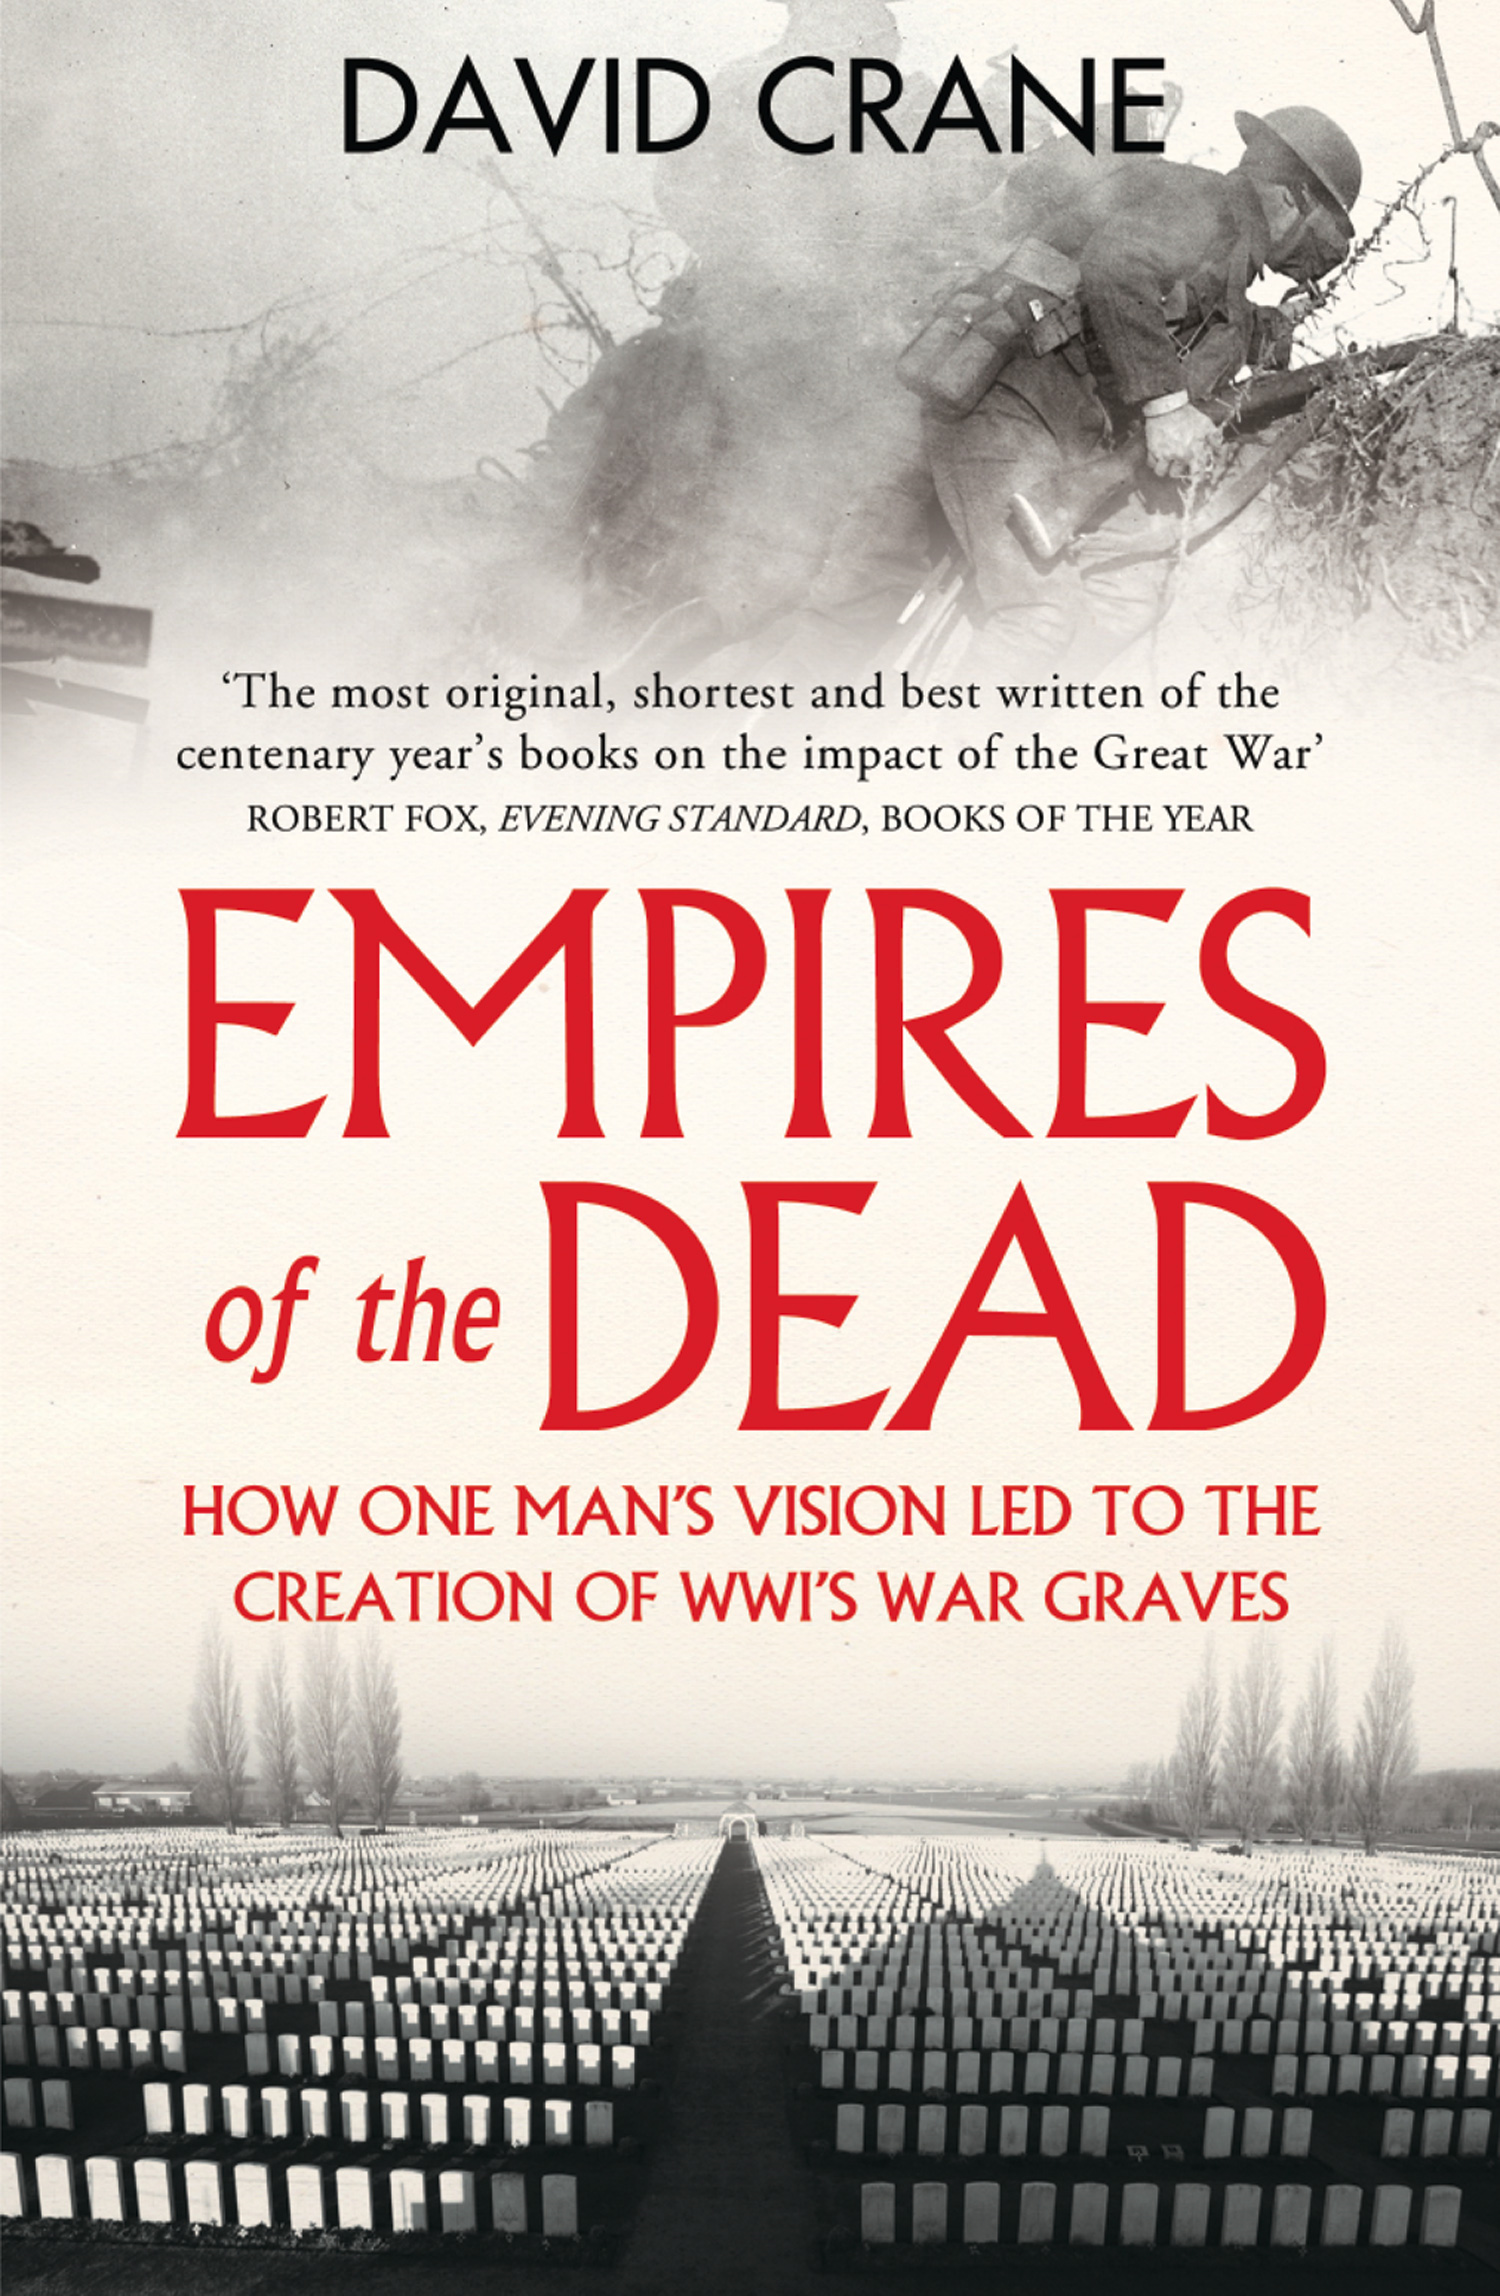 Empires of the Dead: How One Man?s Vision Led to the Creation of WWI?s War Graves